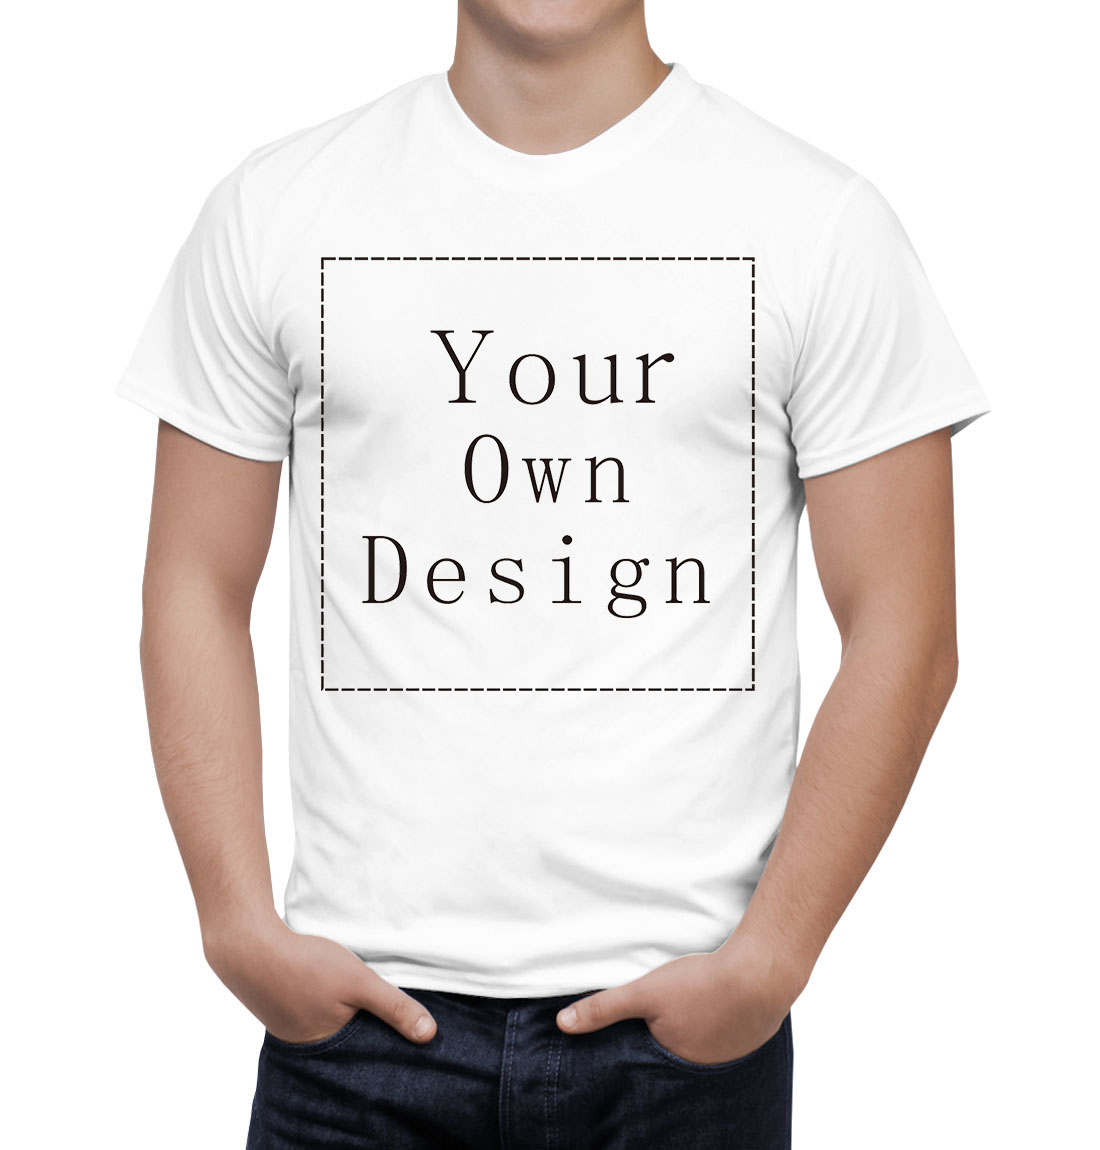 Design your own t-shirt long sleeve - Customized Men S T Shirt Print Your Own Design High Quality Fast Ship China Mainland